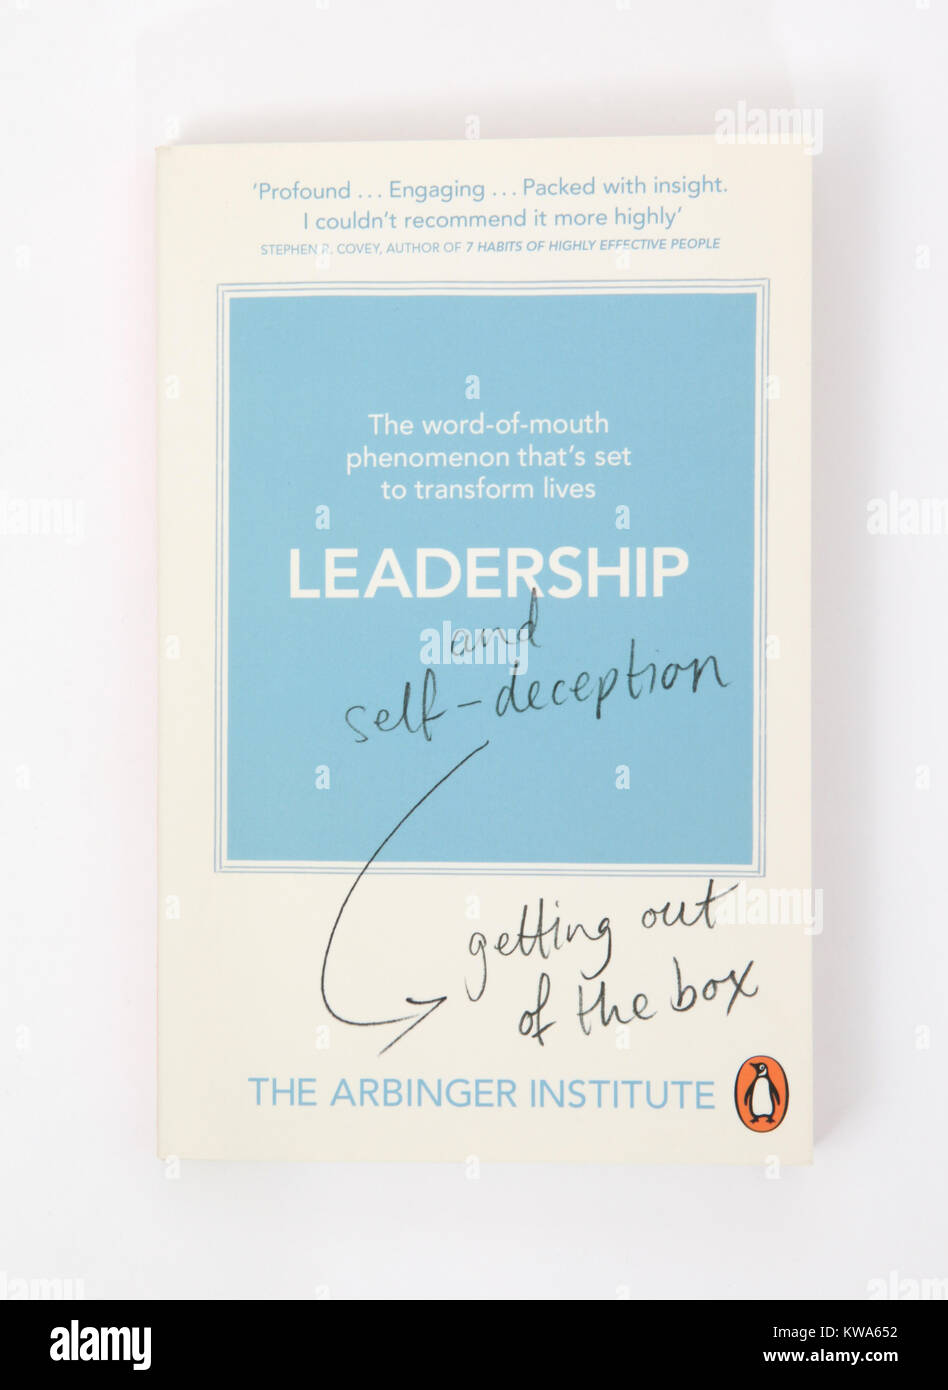 The book, Leadership and self-deception getting out of the box by The Arbinger Institute. - Stock Image